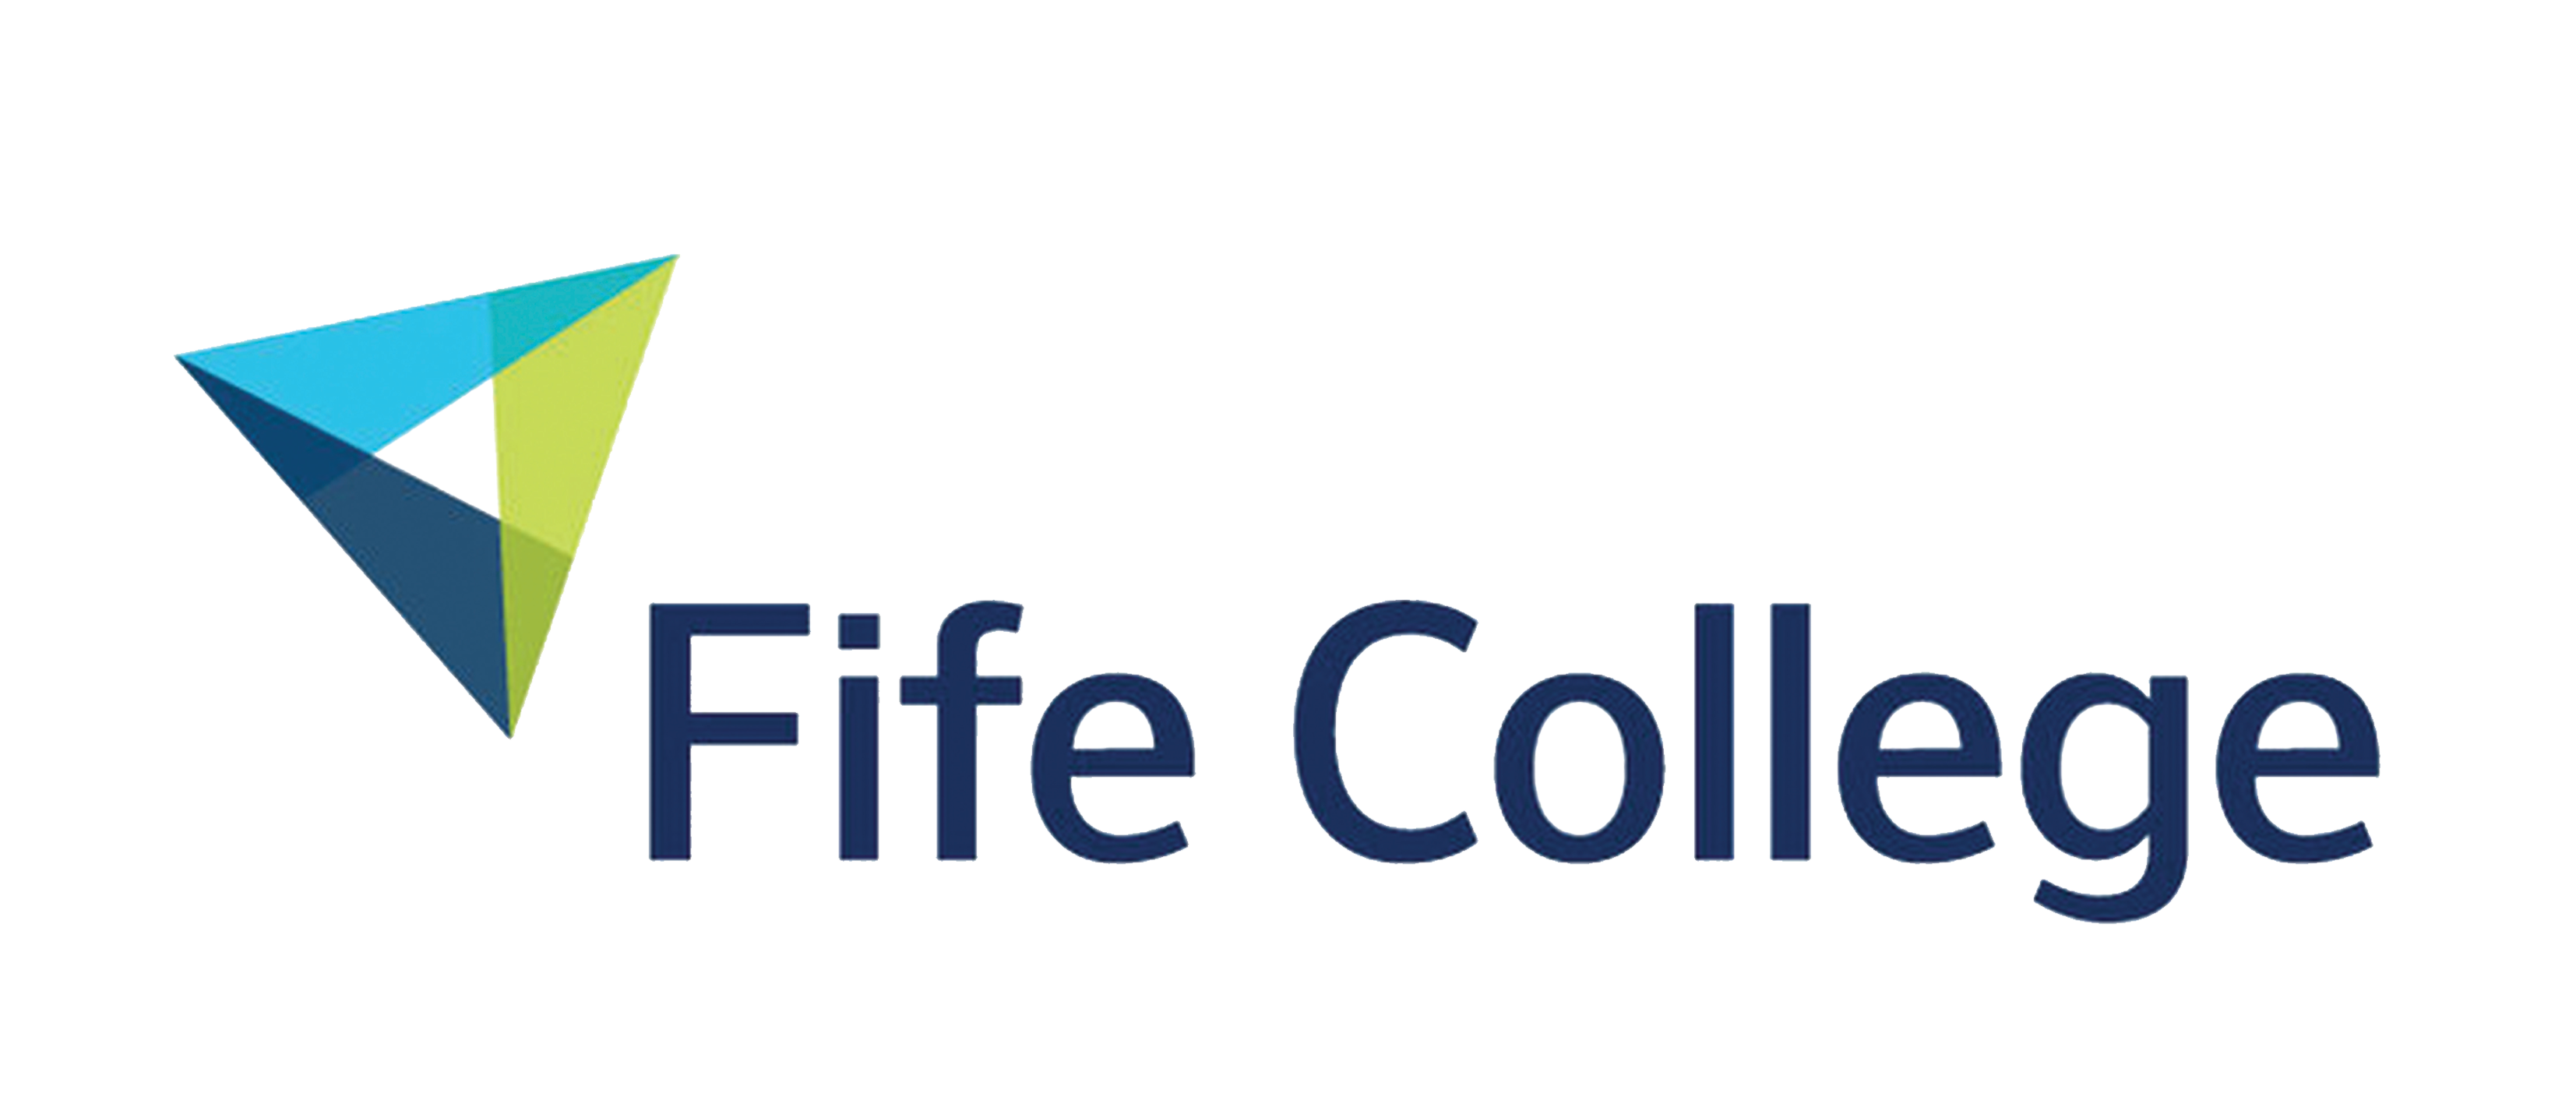 Visit Fife College website